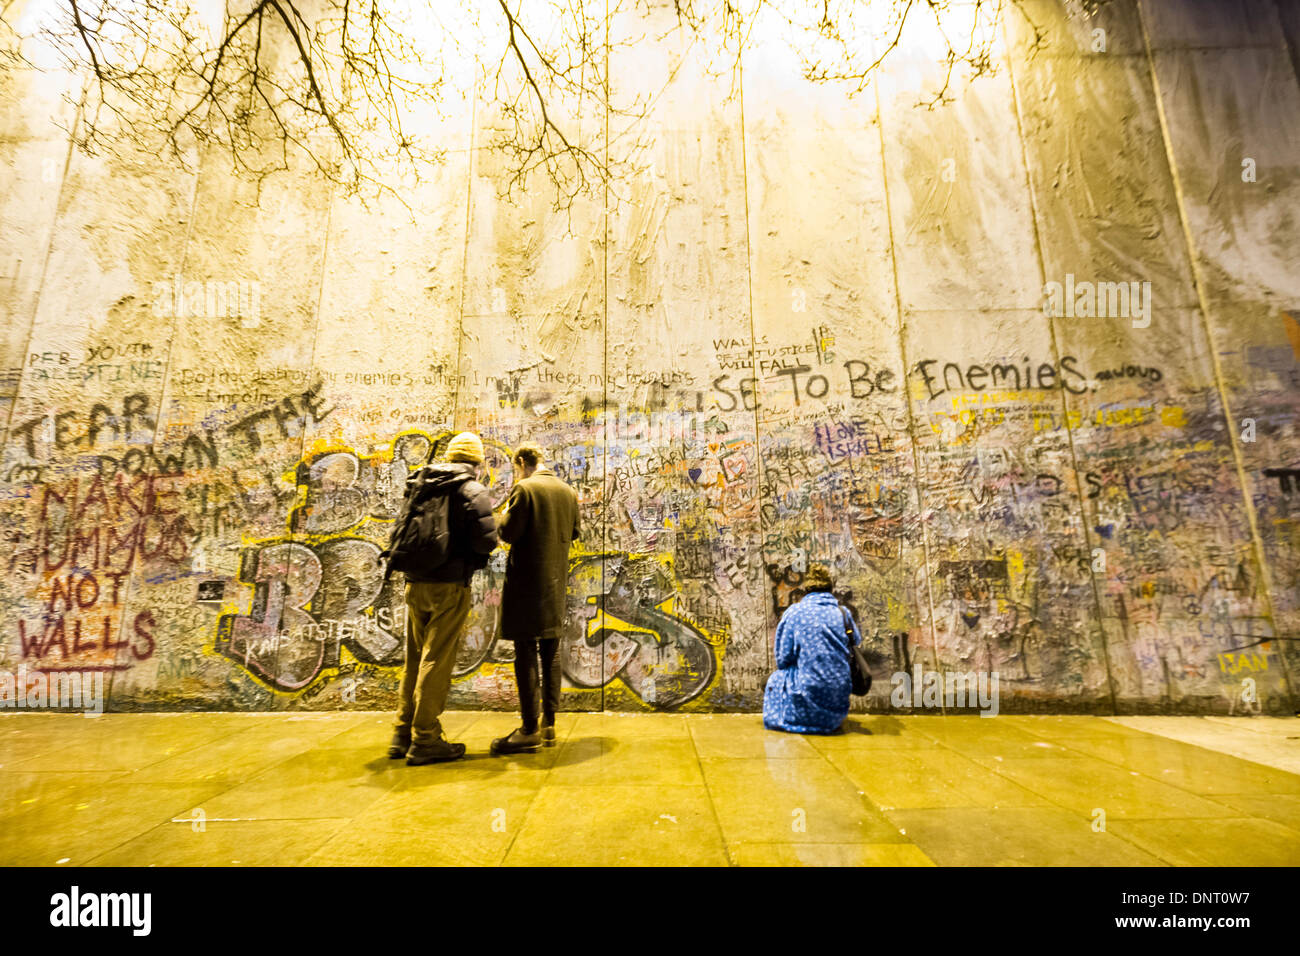 Bethlehem Wall Art Installation Stock Photos & Bethlehem Wall Art ...